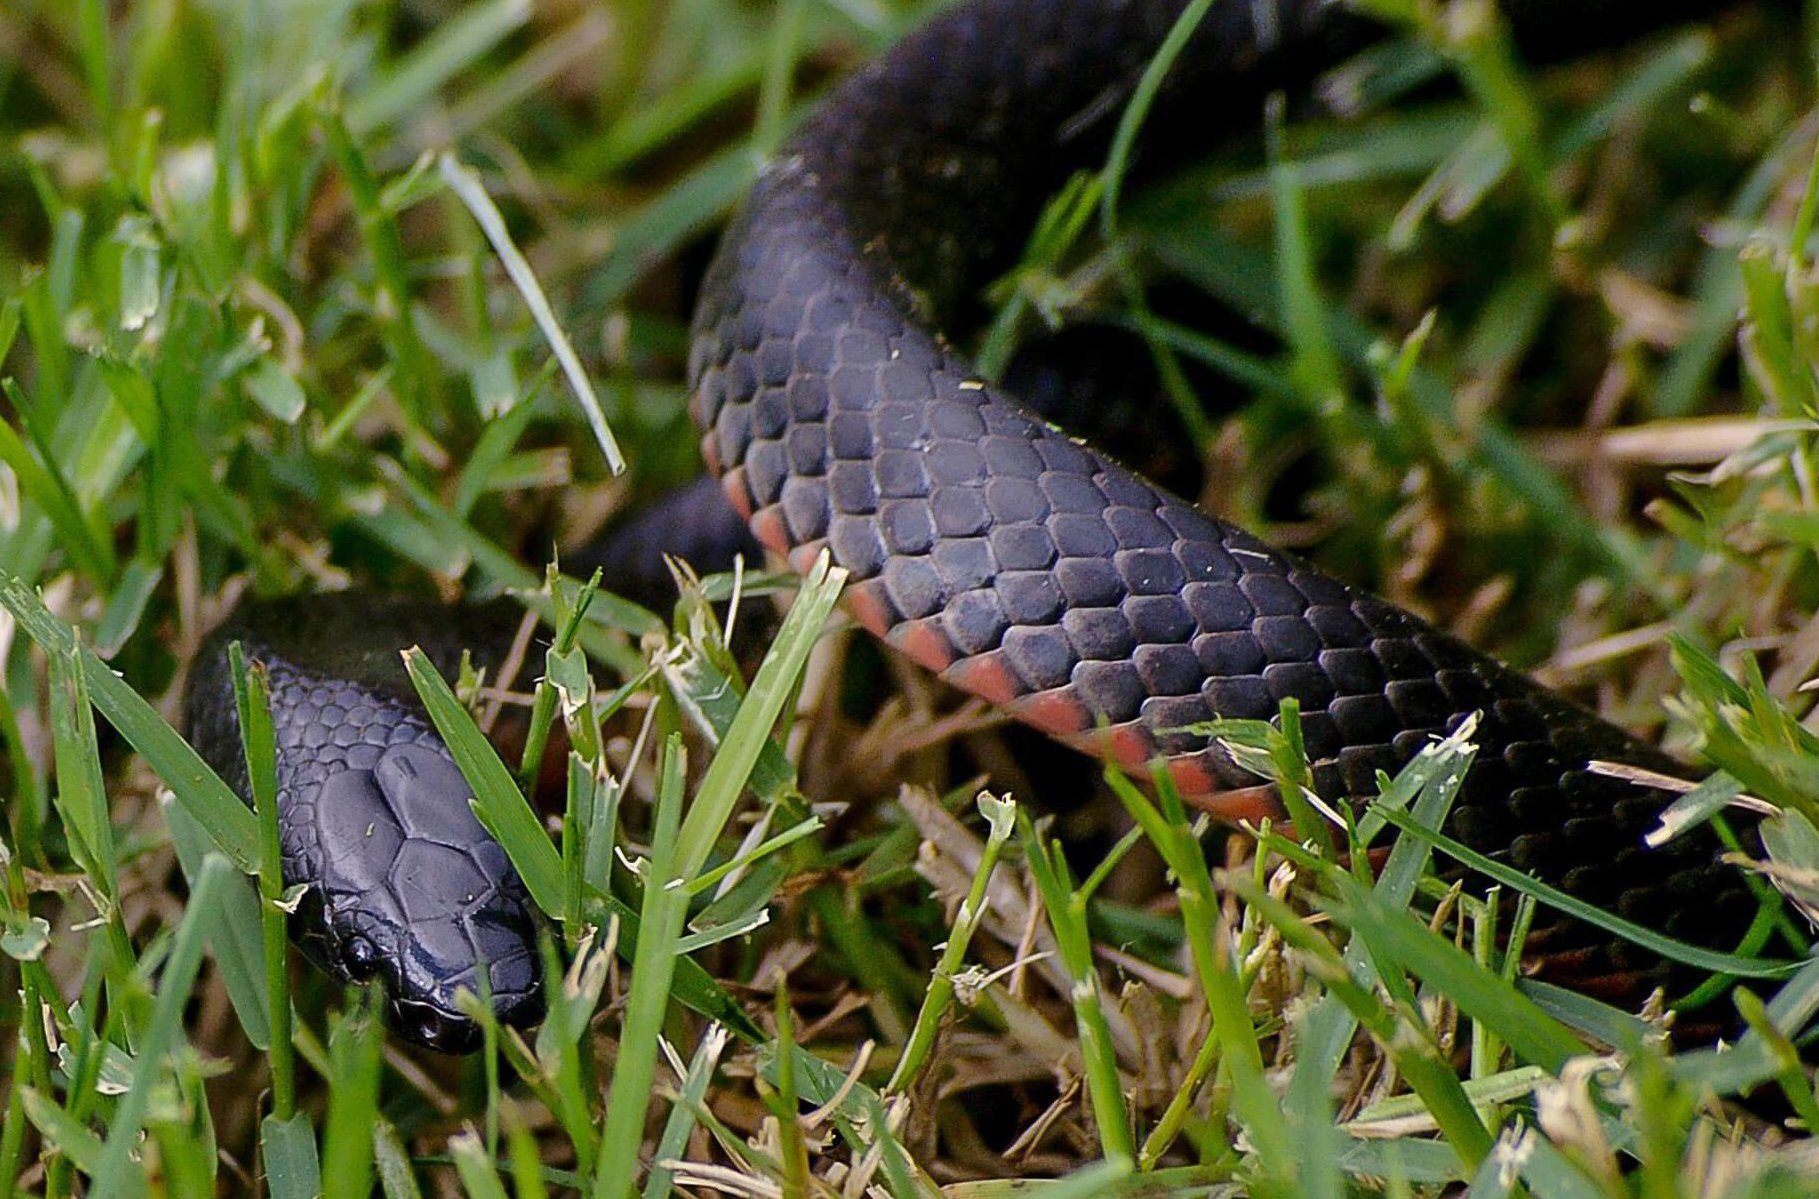 A coiled red bellied black snake in the grass